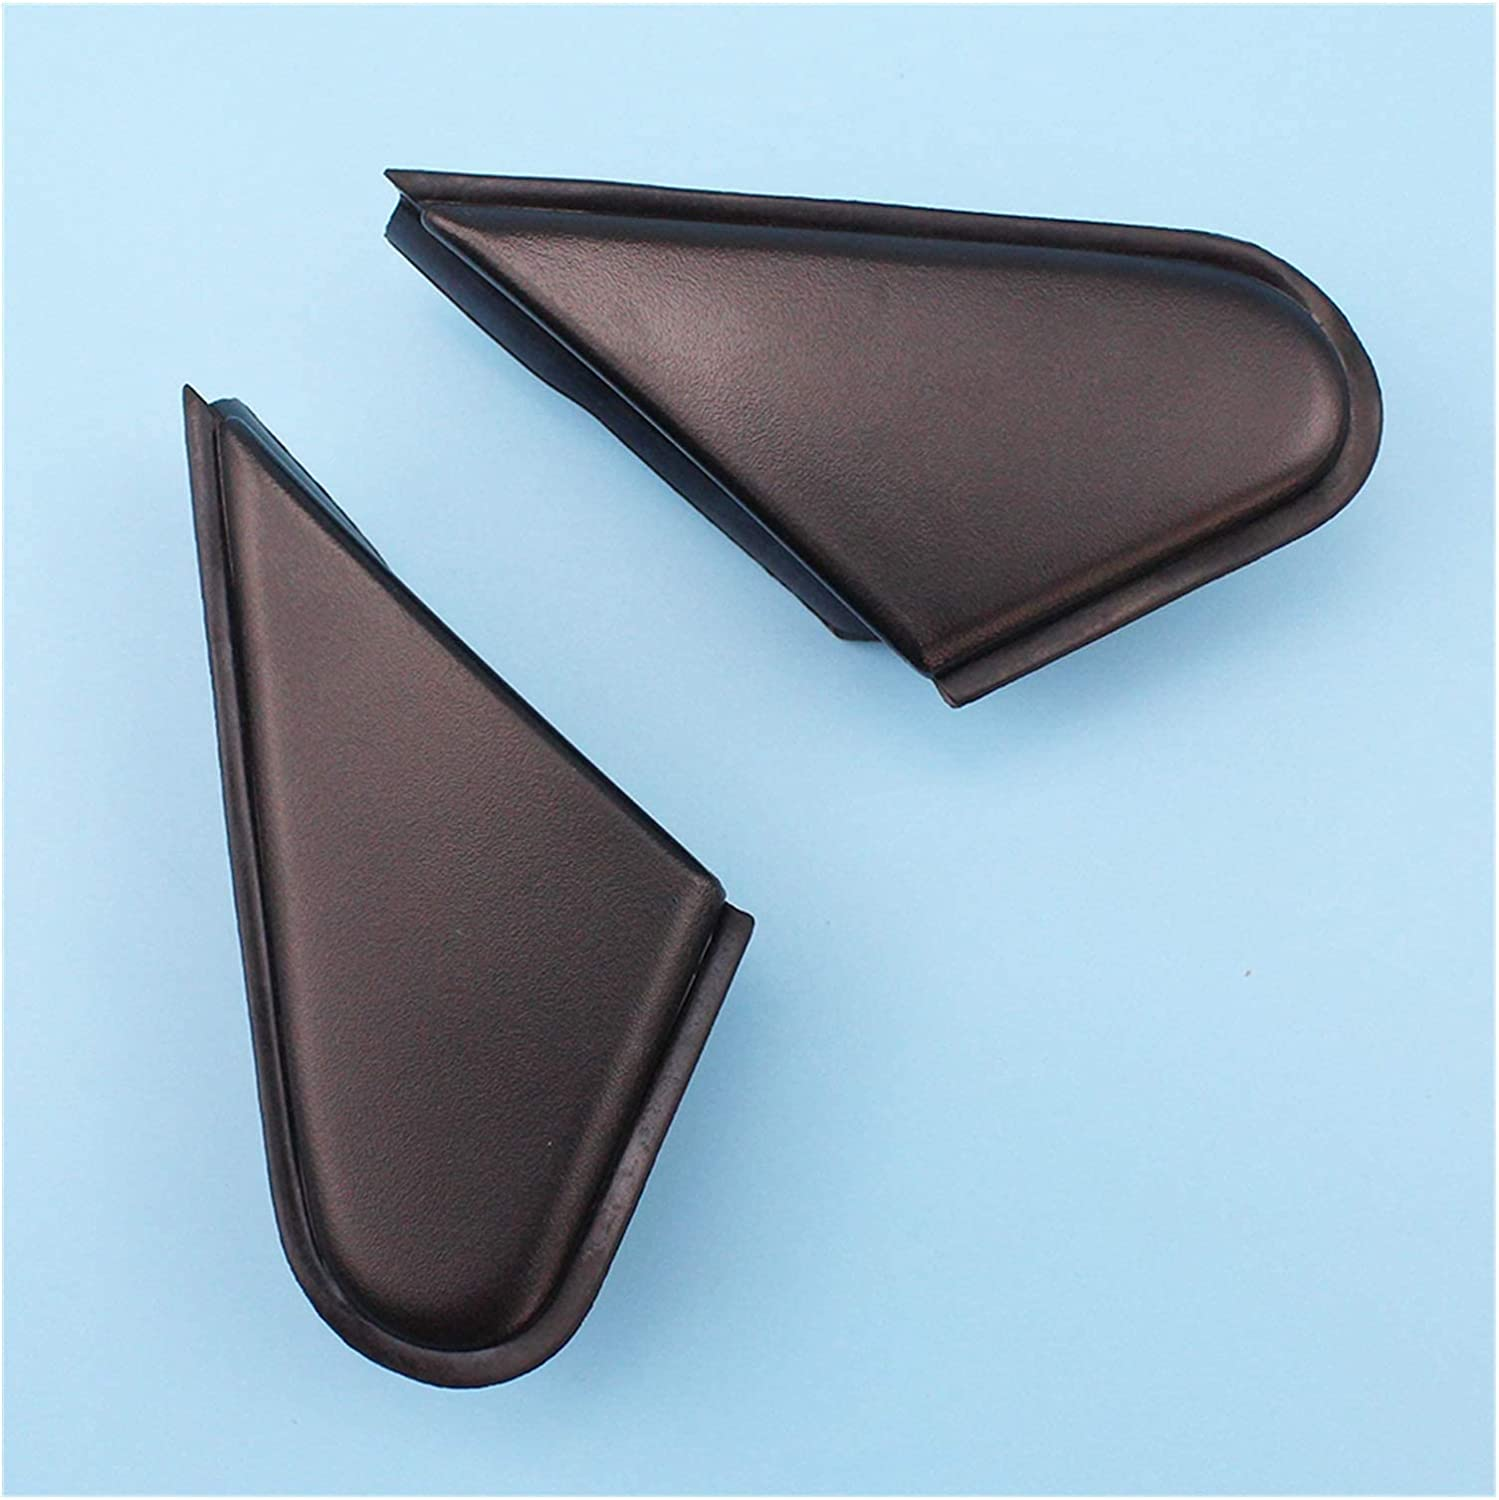 QifawU Front Left Right free Mirror 7405A3 Pillar Ranking TOP18 Plate Triangle Trim